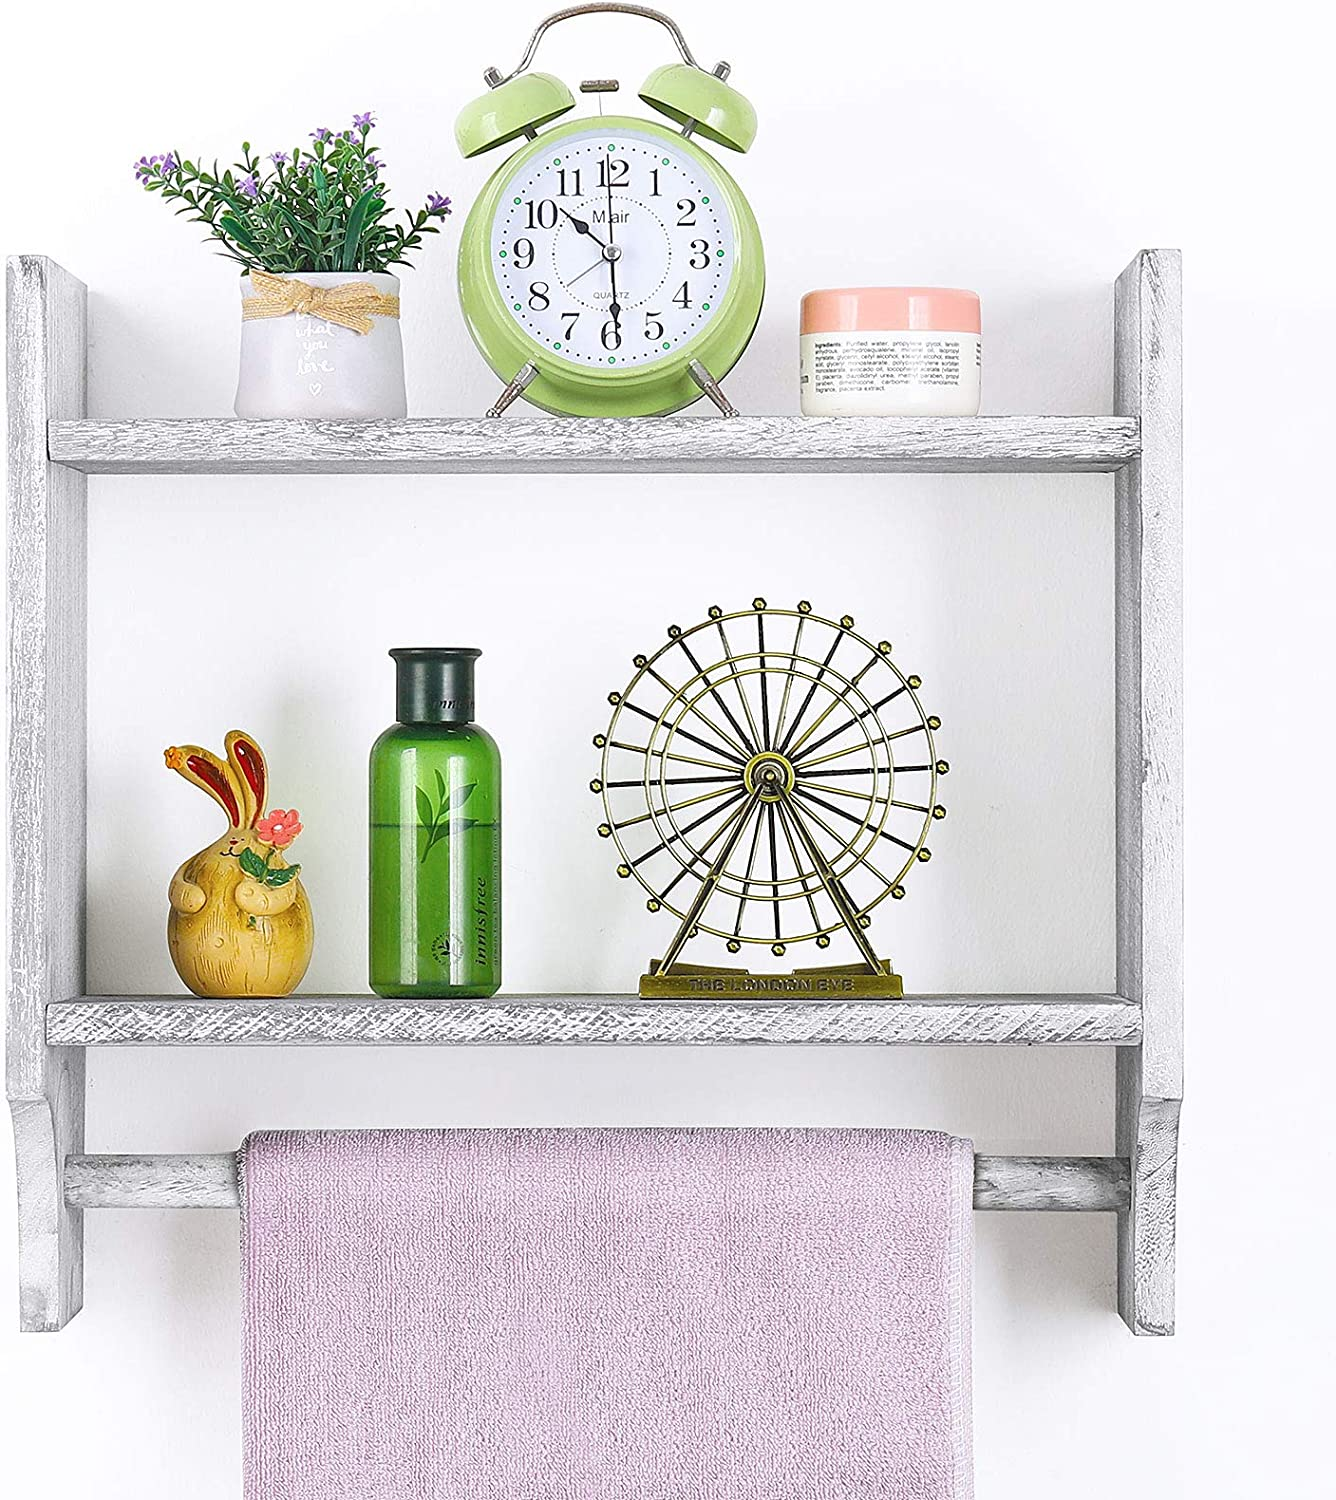 Bathroom Wall Shelves with Towel Bar, Wood Towel Rack with Shelf Wall Mounted Ladder Towel Holder Over Toilet Organizer Storage for Bathroom Living Room Kitchen Farmhouse Decor